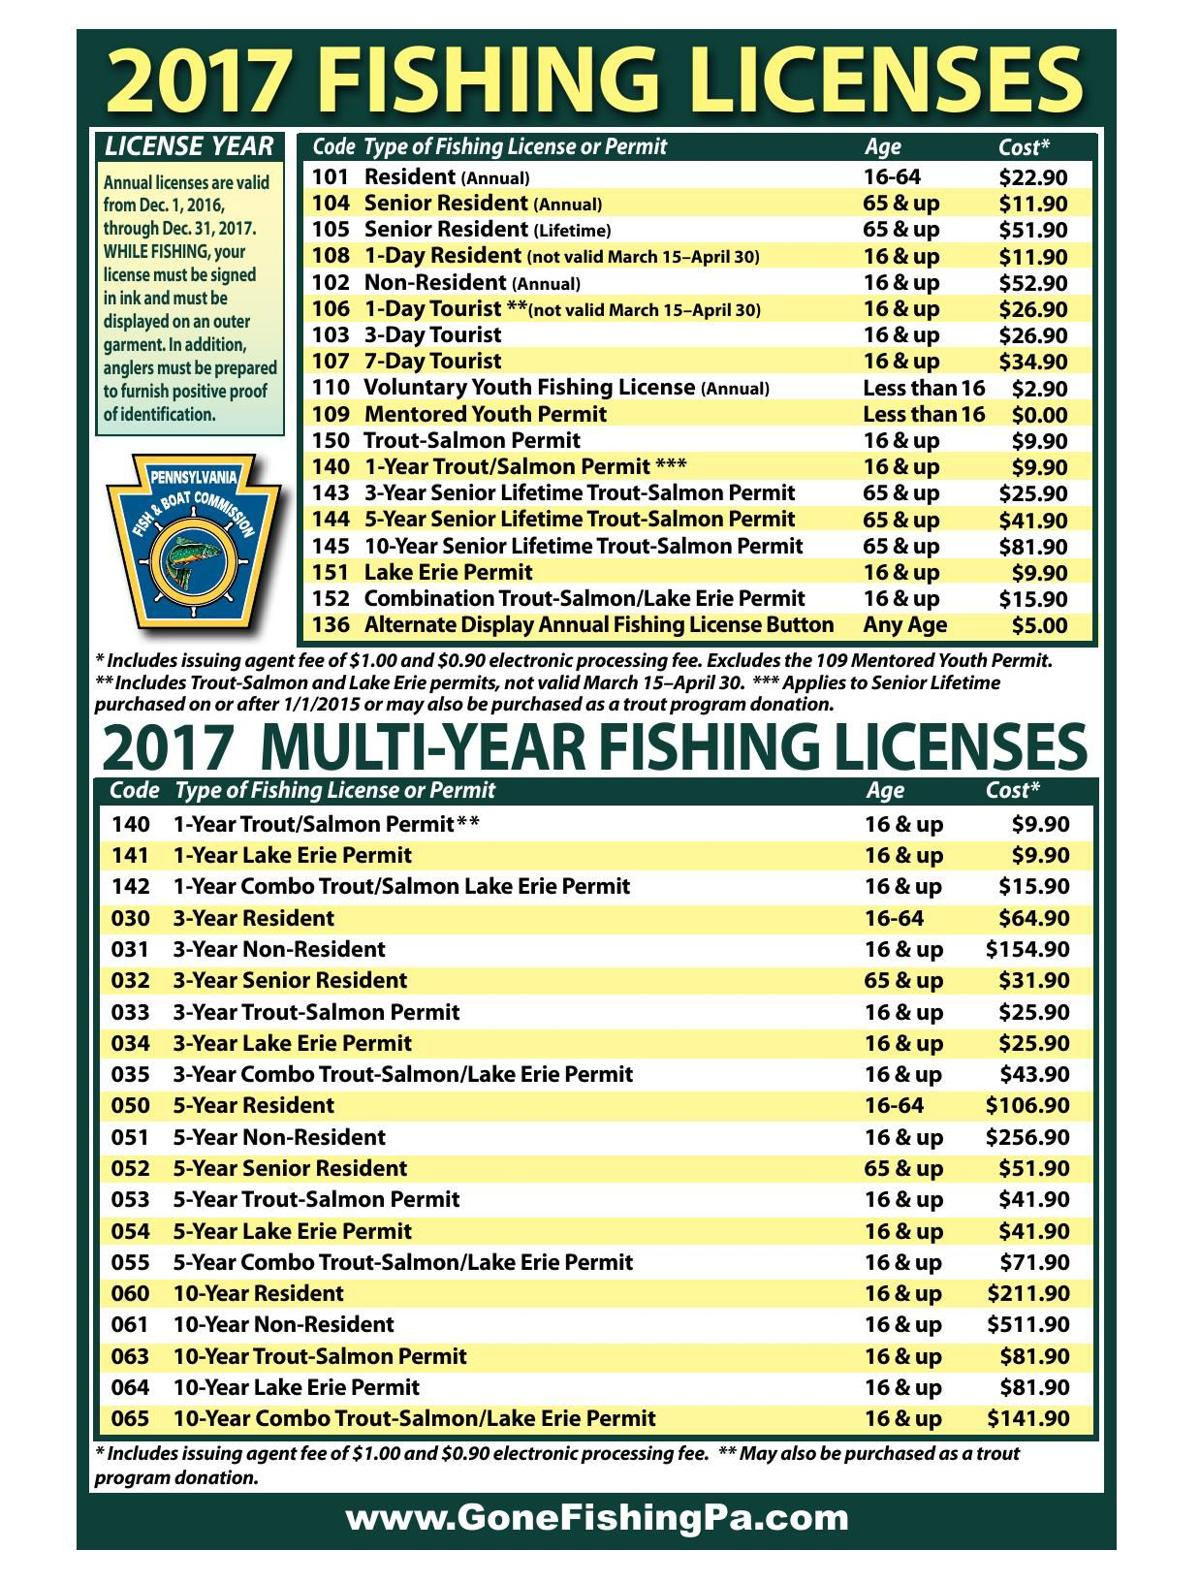 2017 rates for Pa. fishing licenses